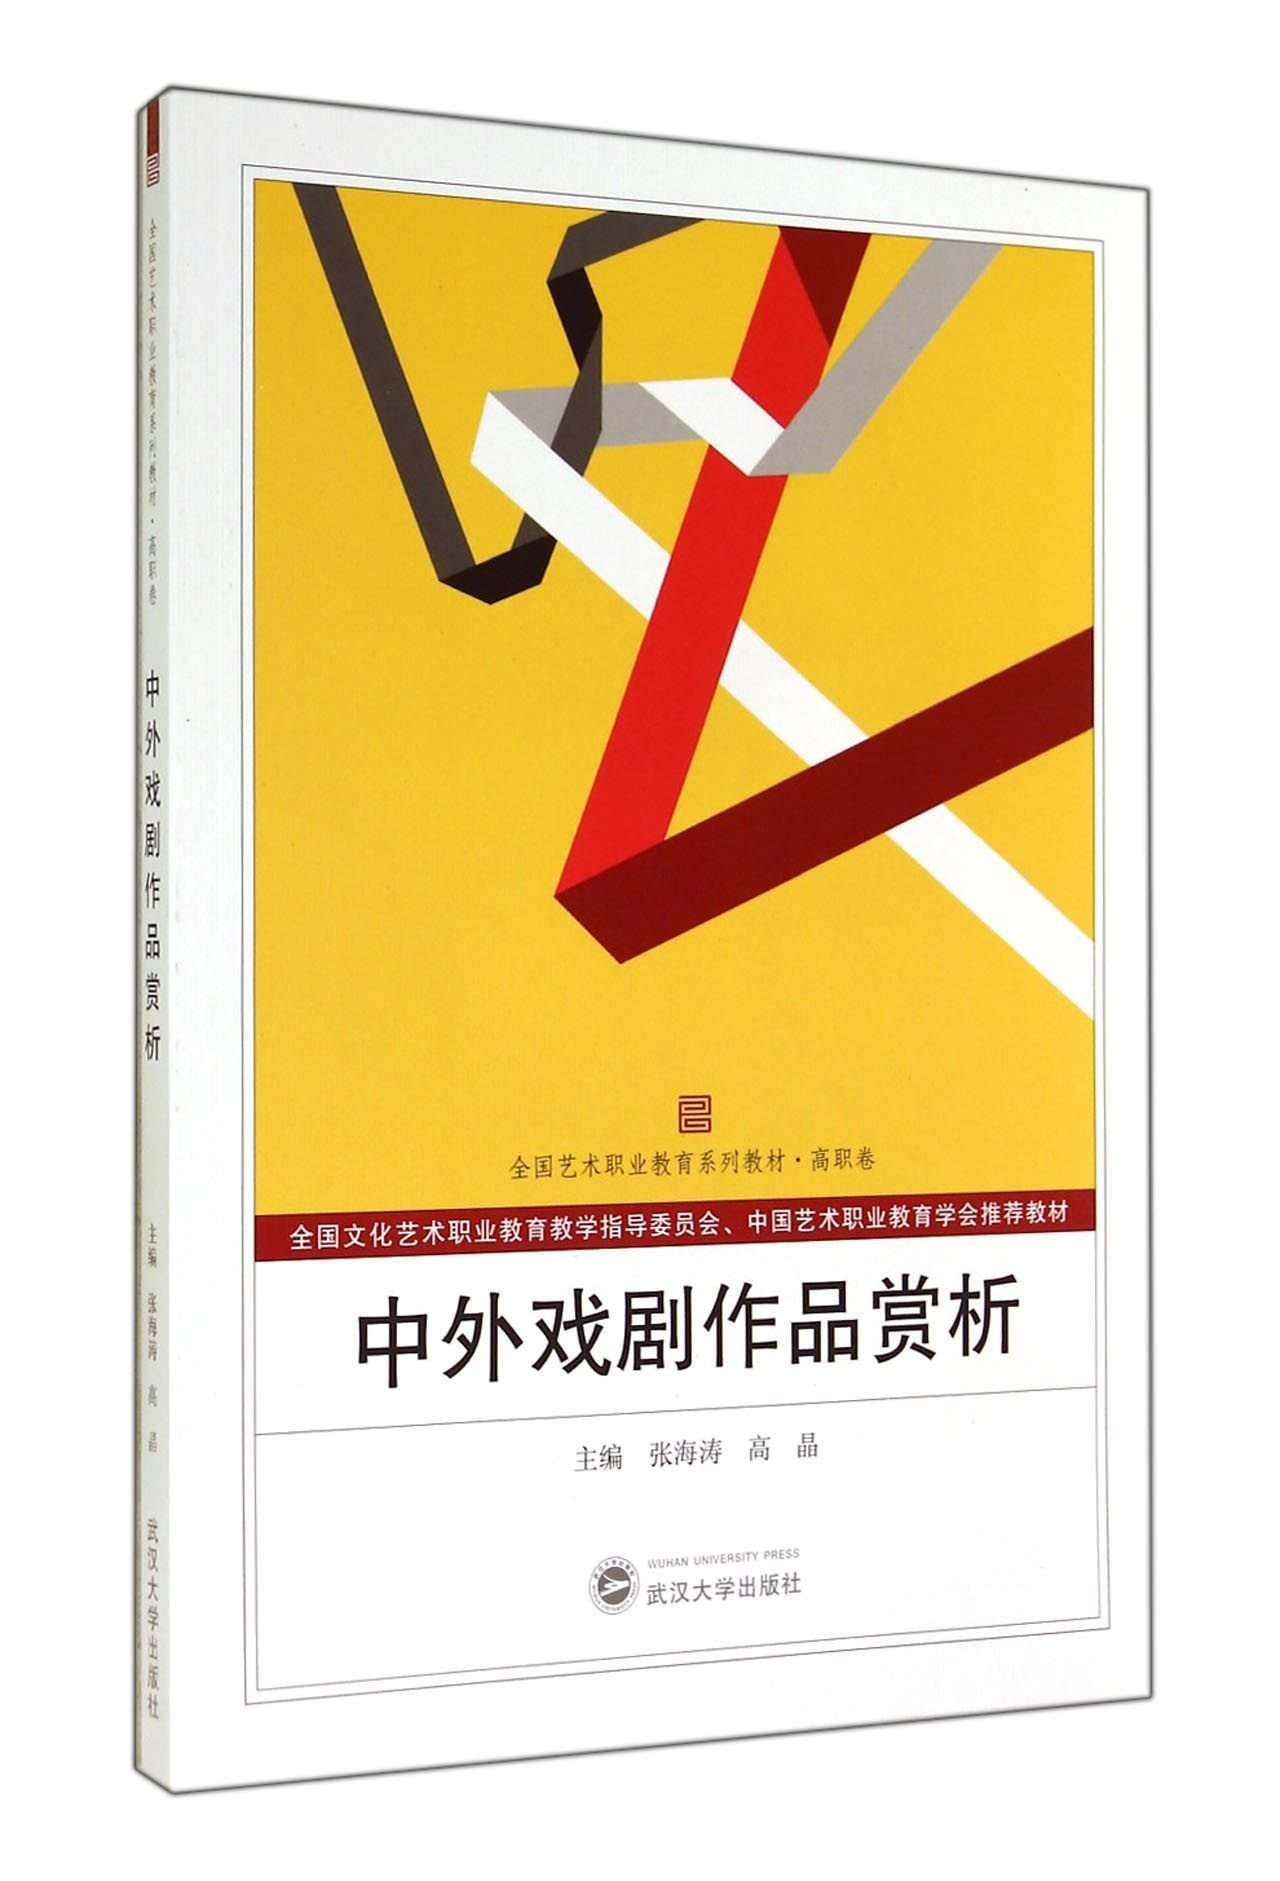 Appreciation of Chinese and foreign theatrical productions (National Art vocational education textbook series)(Chinese Edition) pdf epub